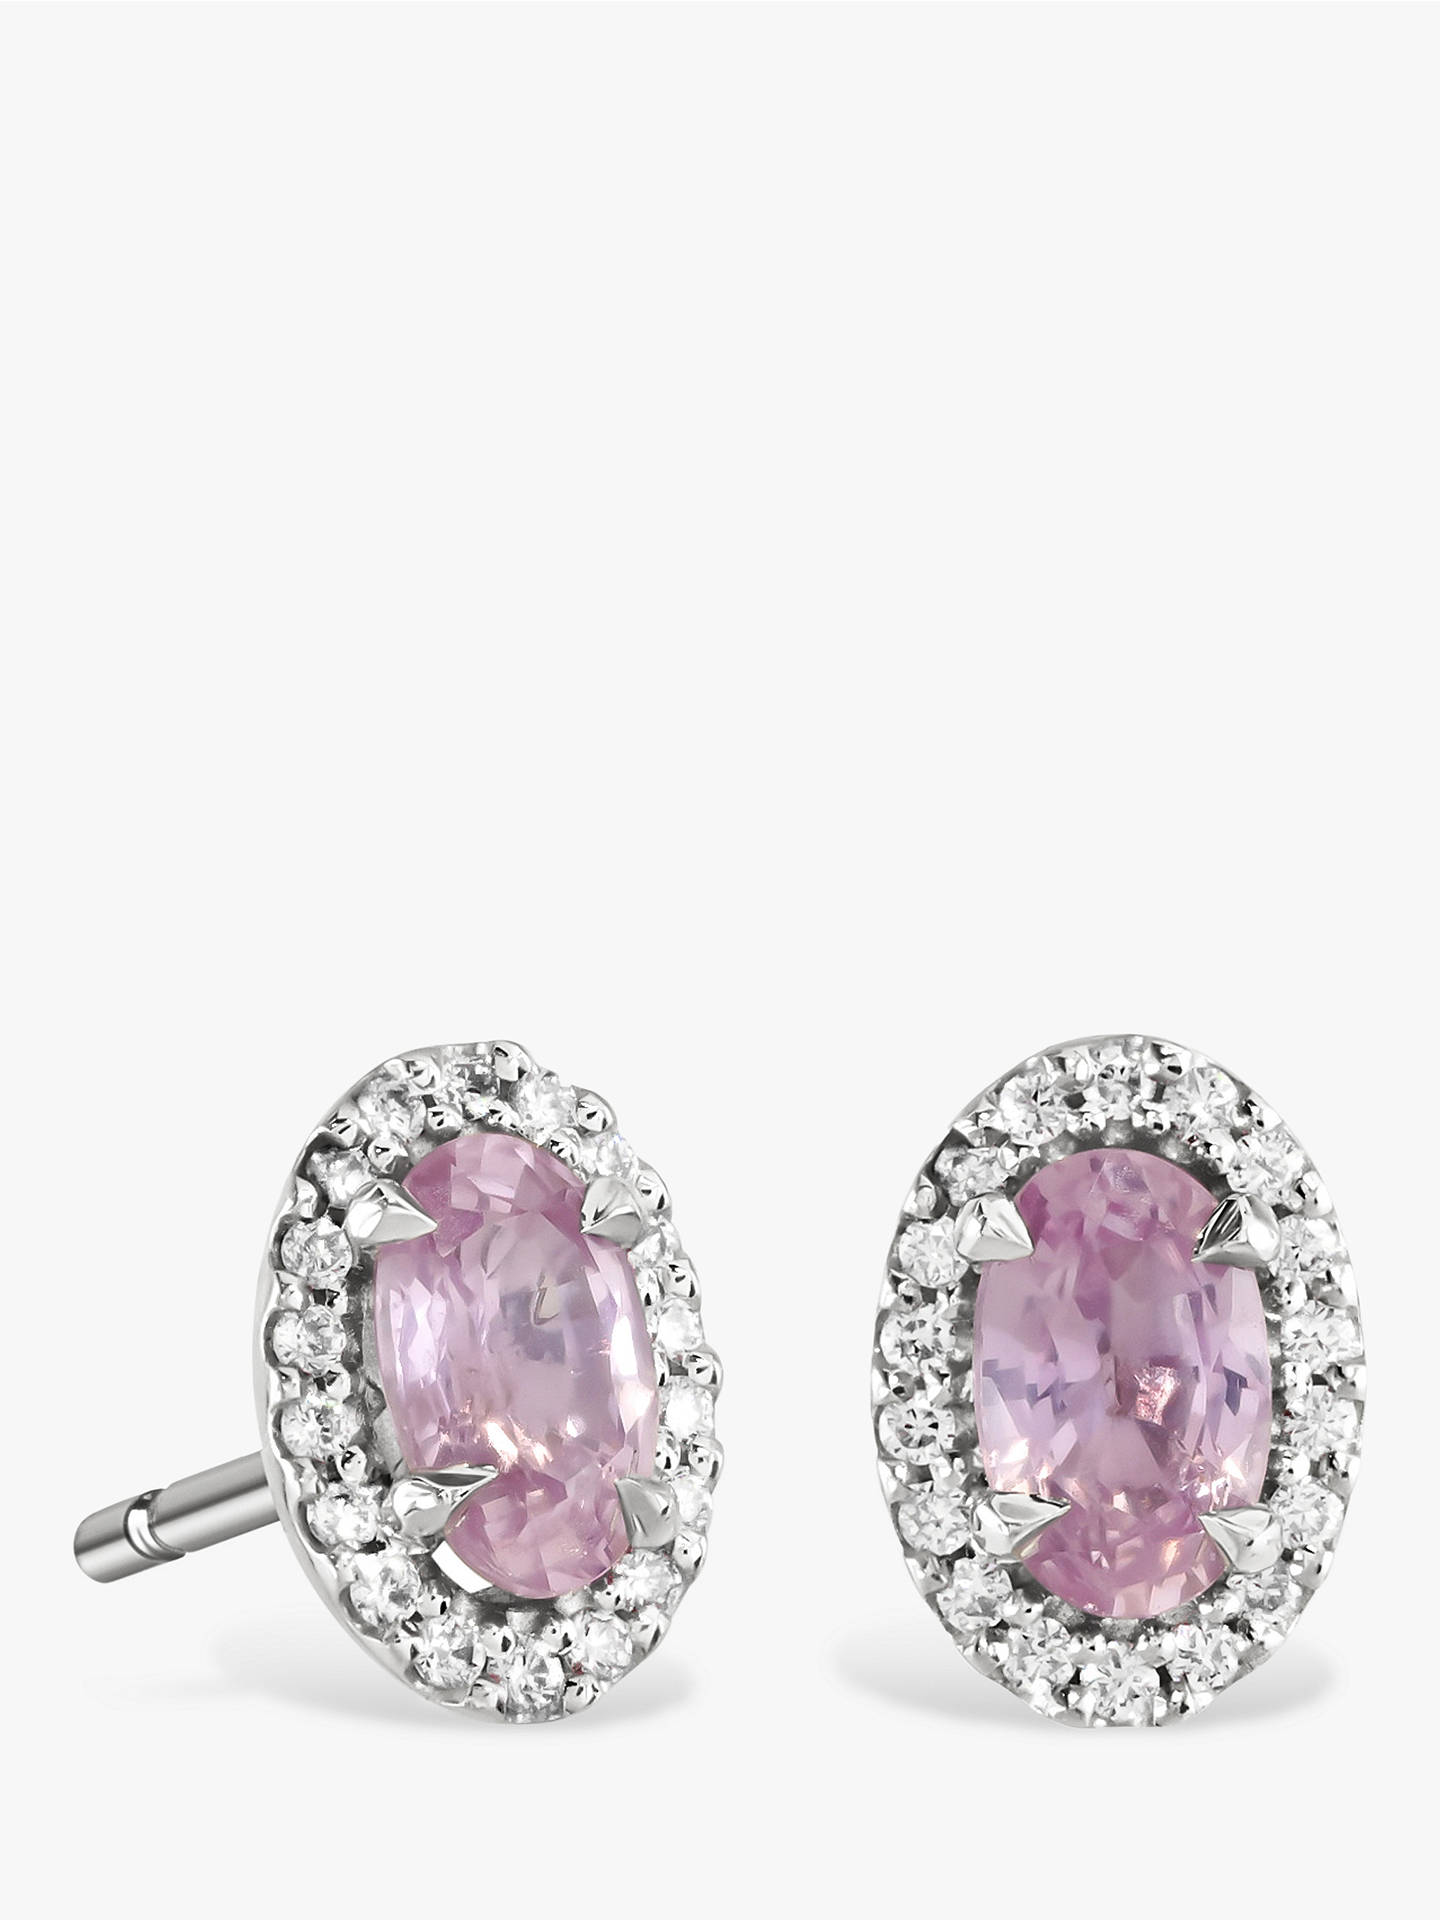 342ce0692 Buy Brown & Newirth 9ct White Gold Pink Sapphire and Diamond Oval Stud  Earrings, 0.39 ...